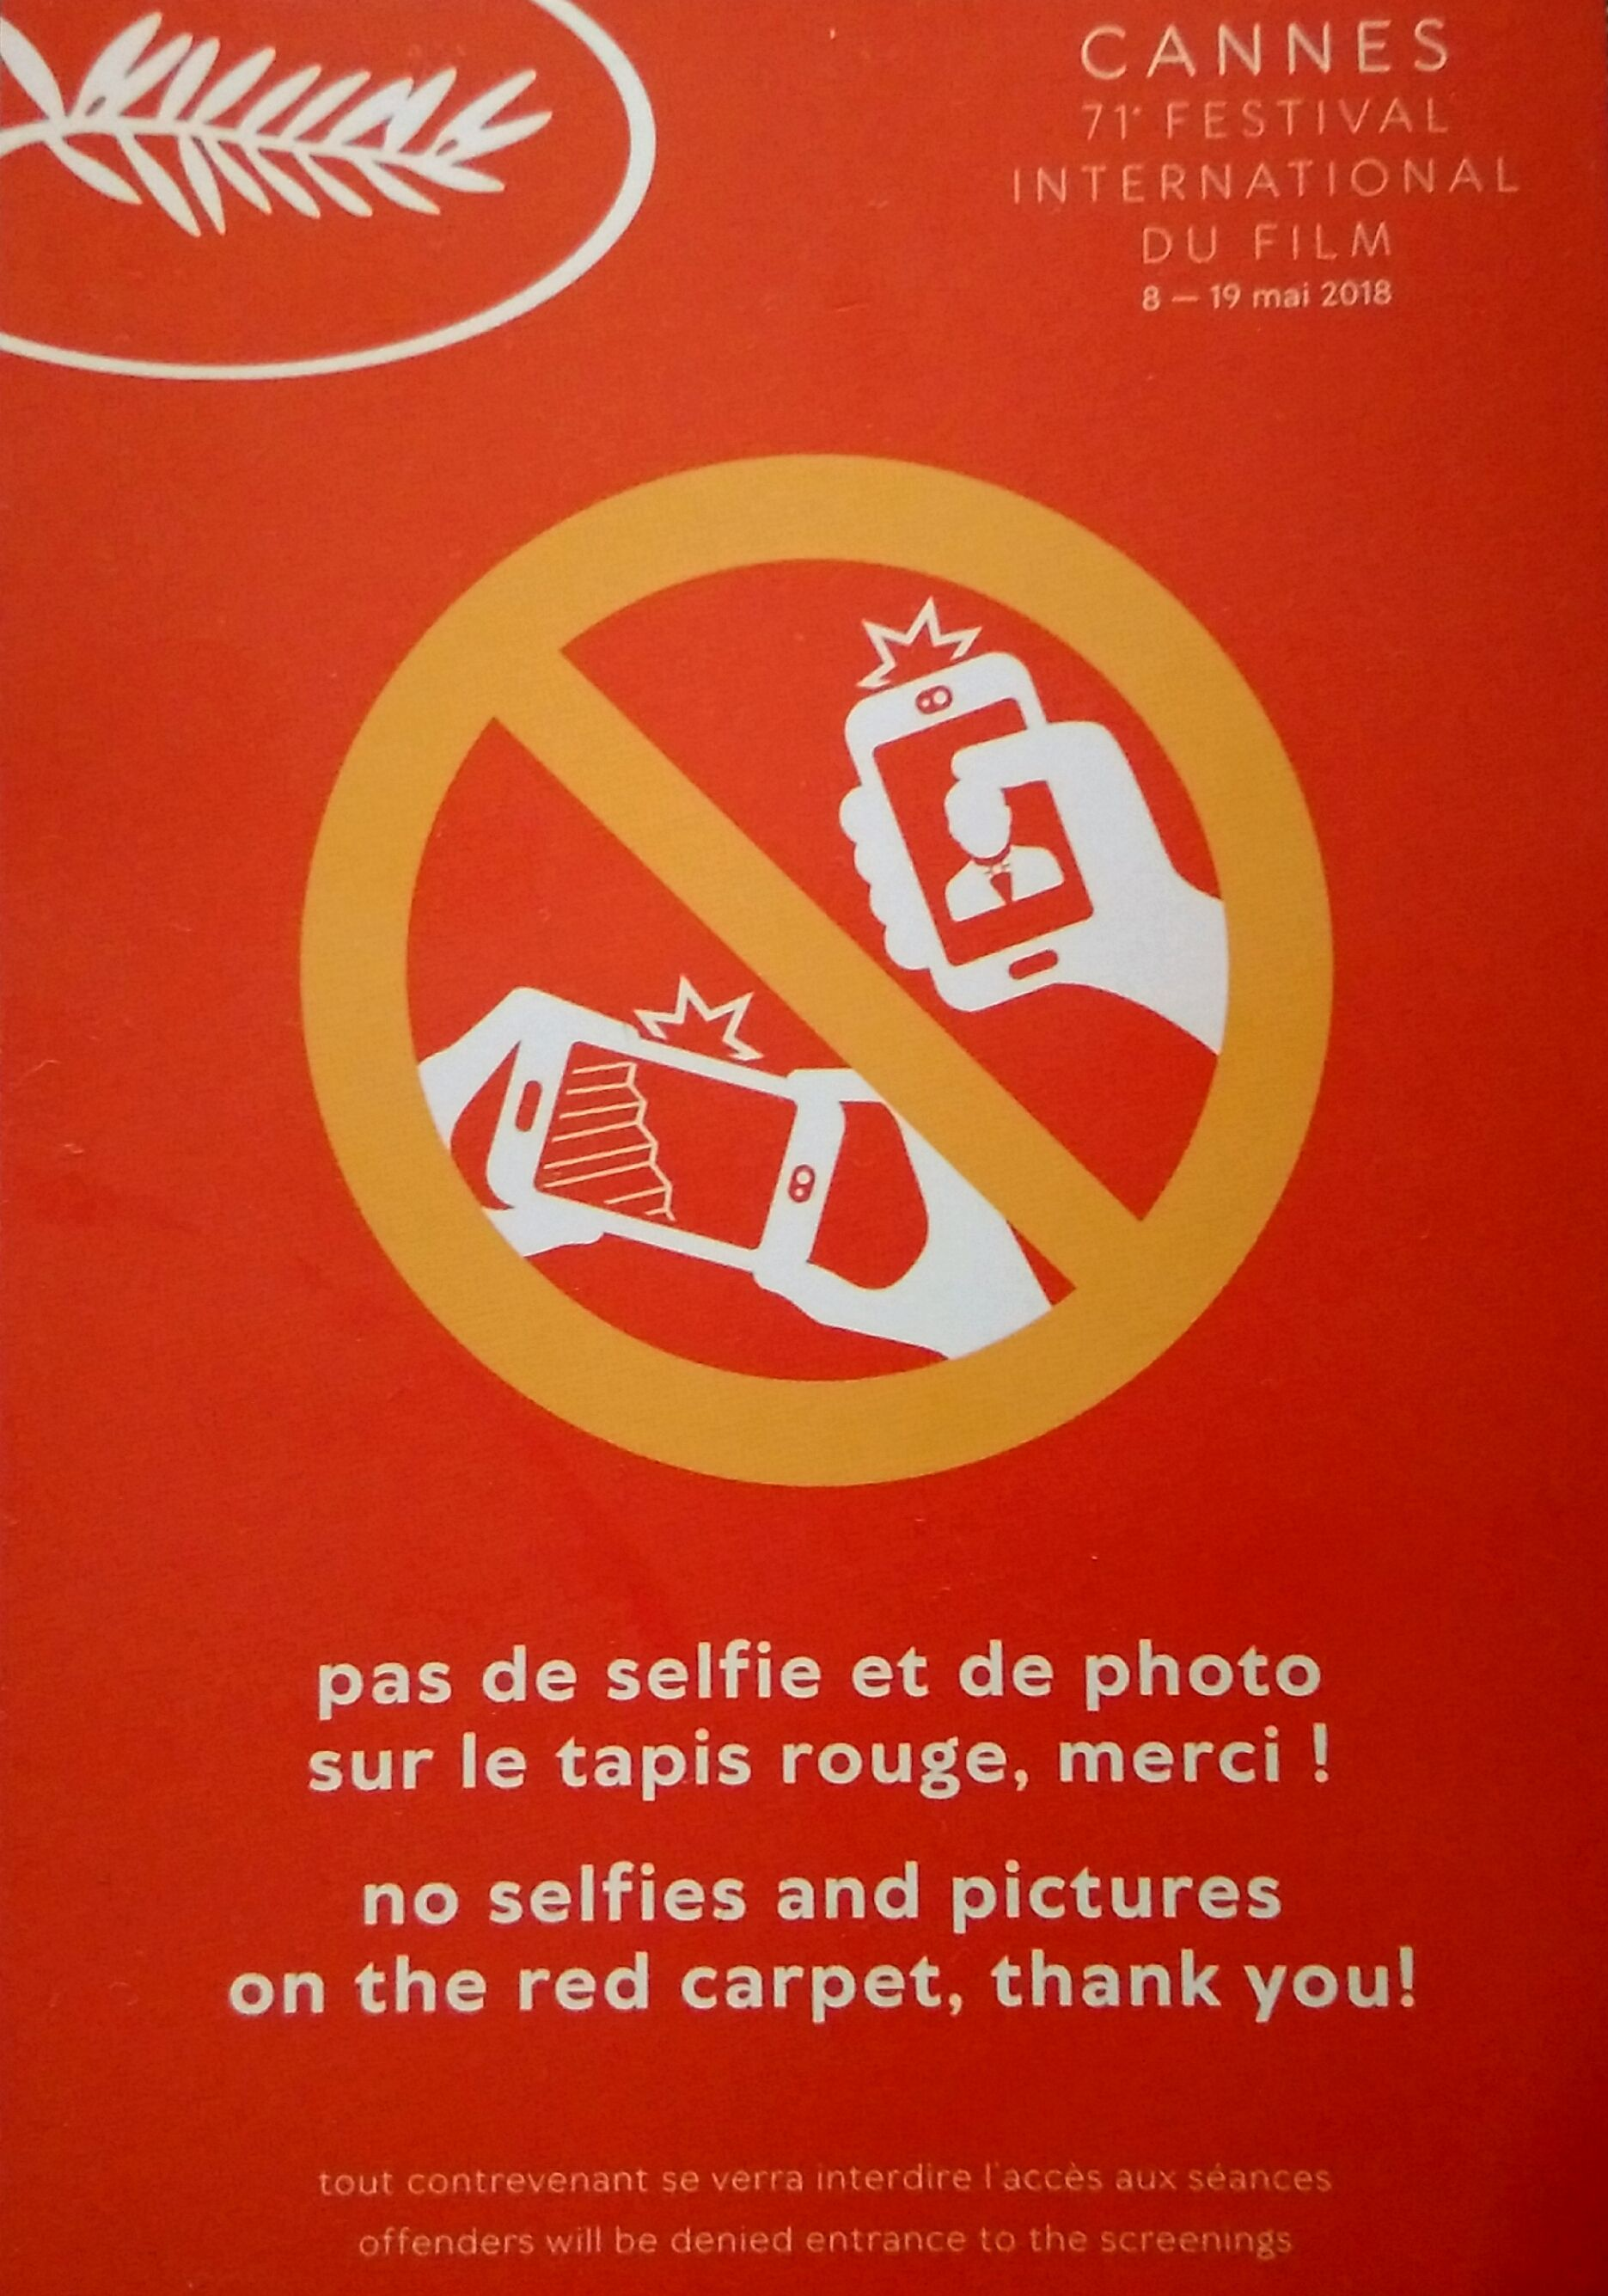 Cannes Film Festival Red Capet etiquette no selfies on the red carpet